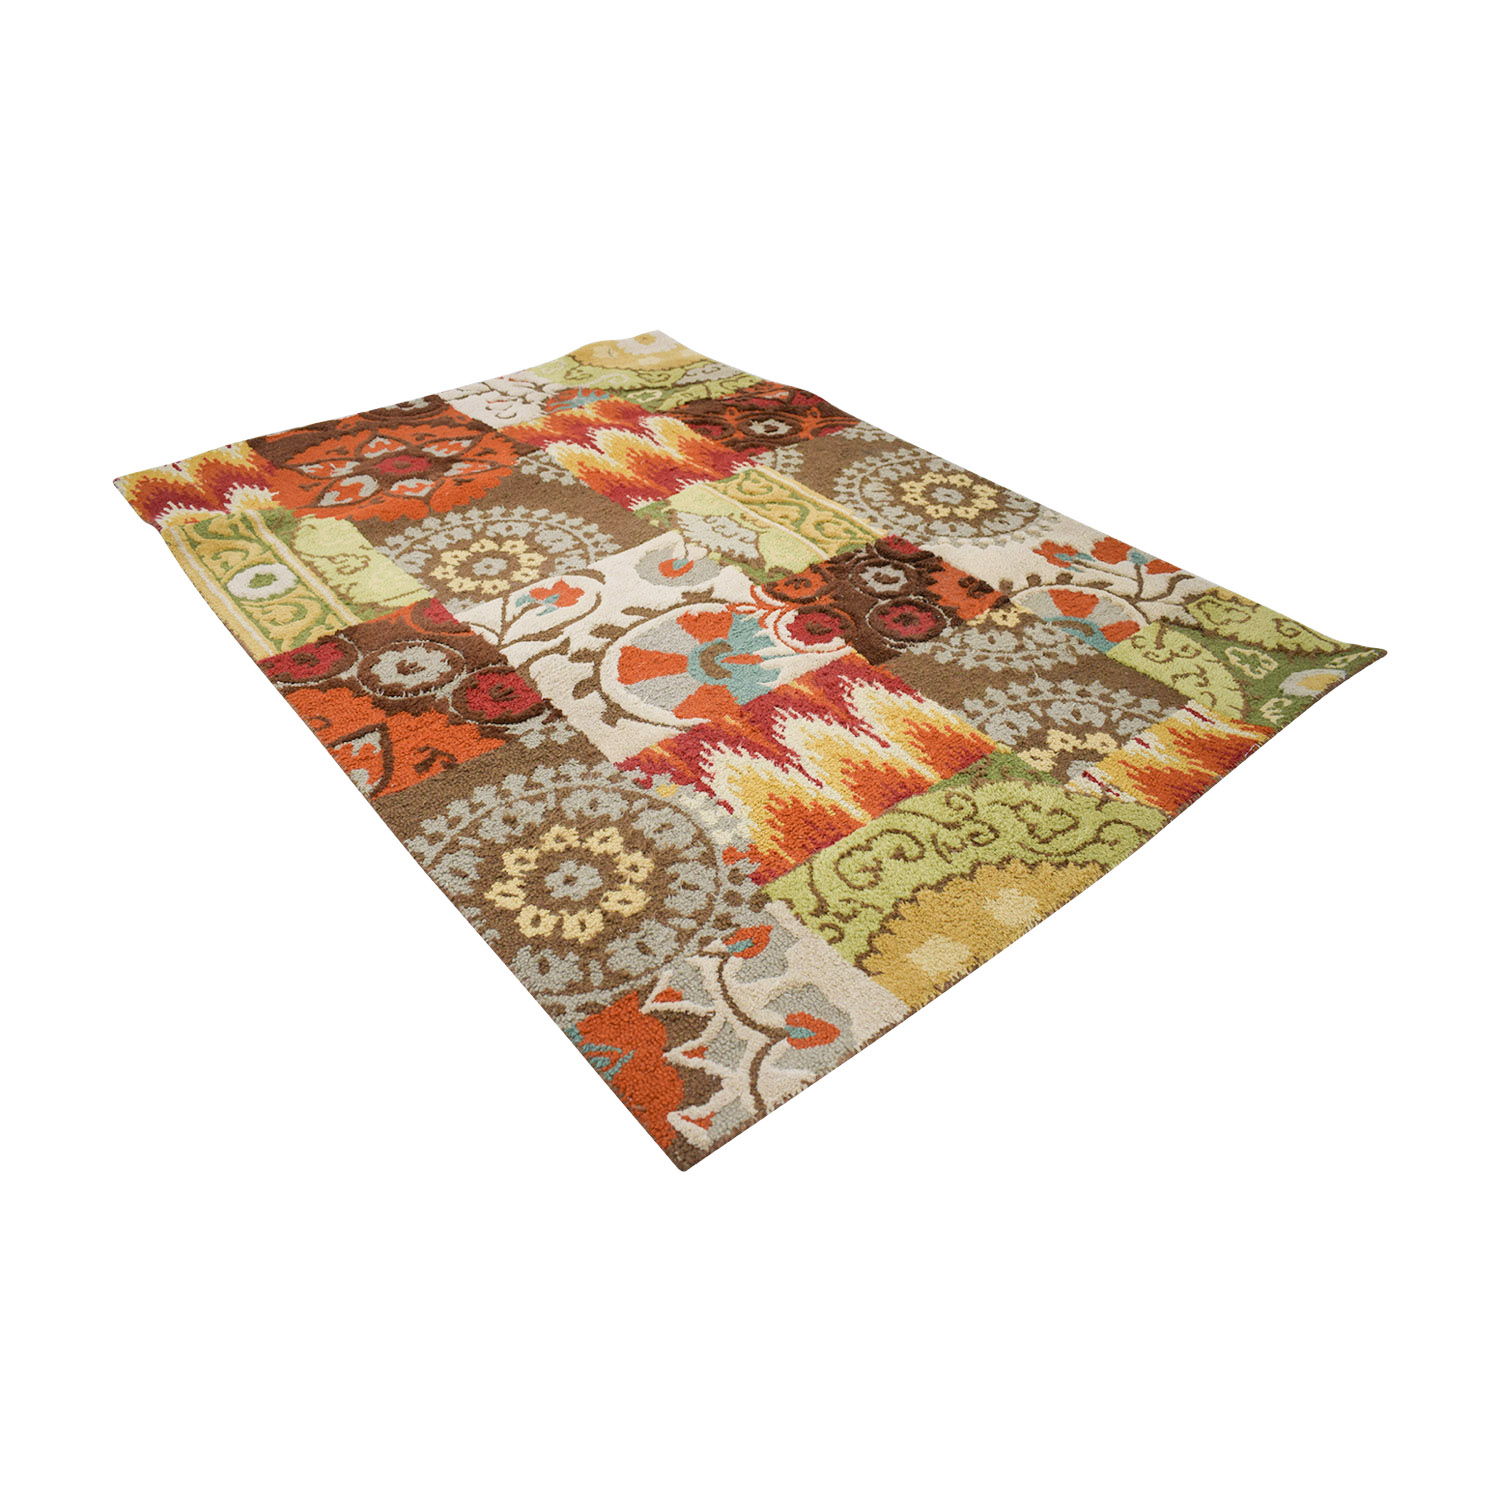 Threshold Threshold Patchwork Multi-Colored Rug on sale